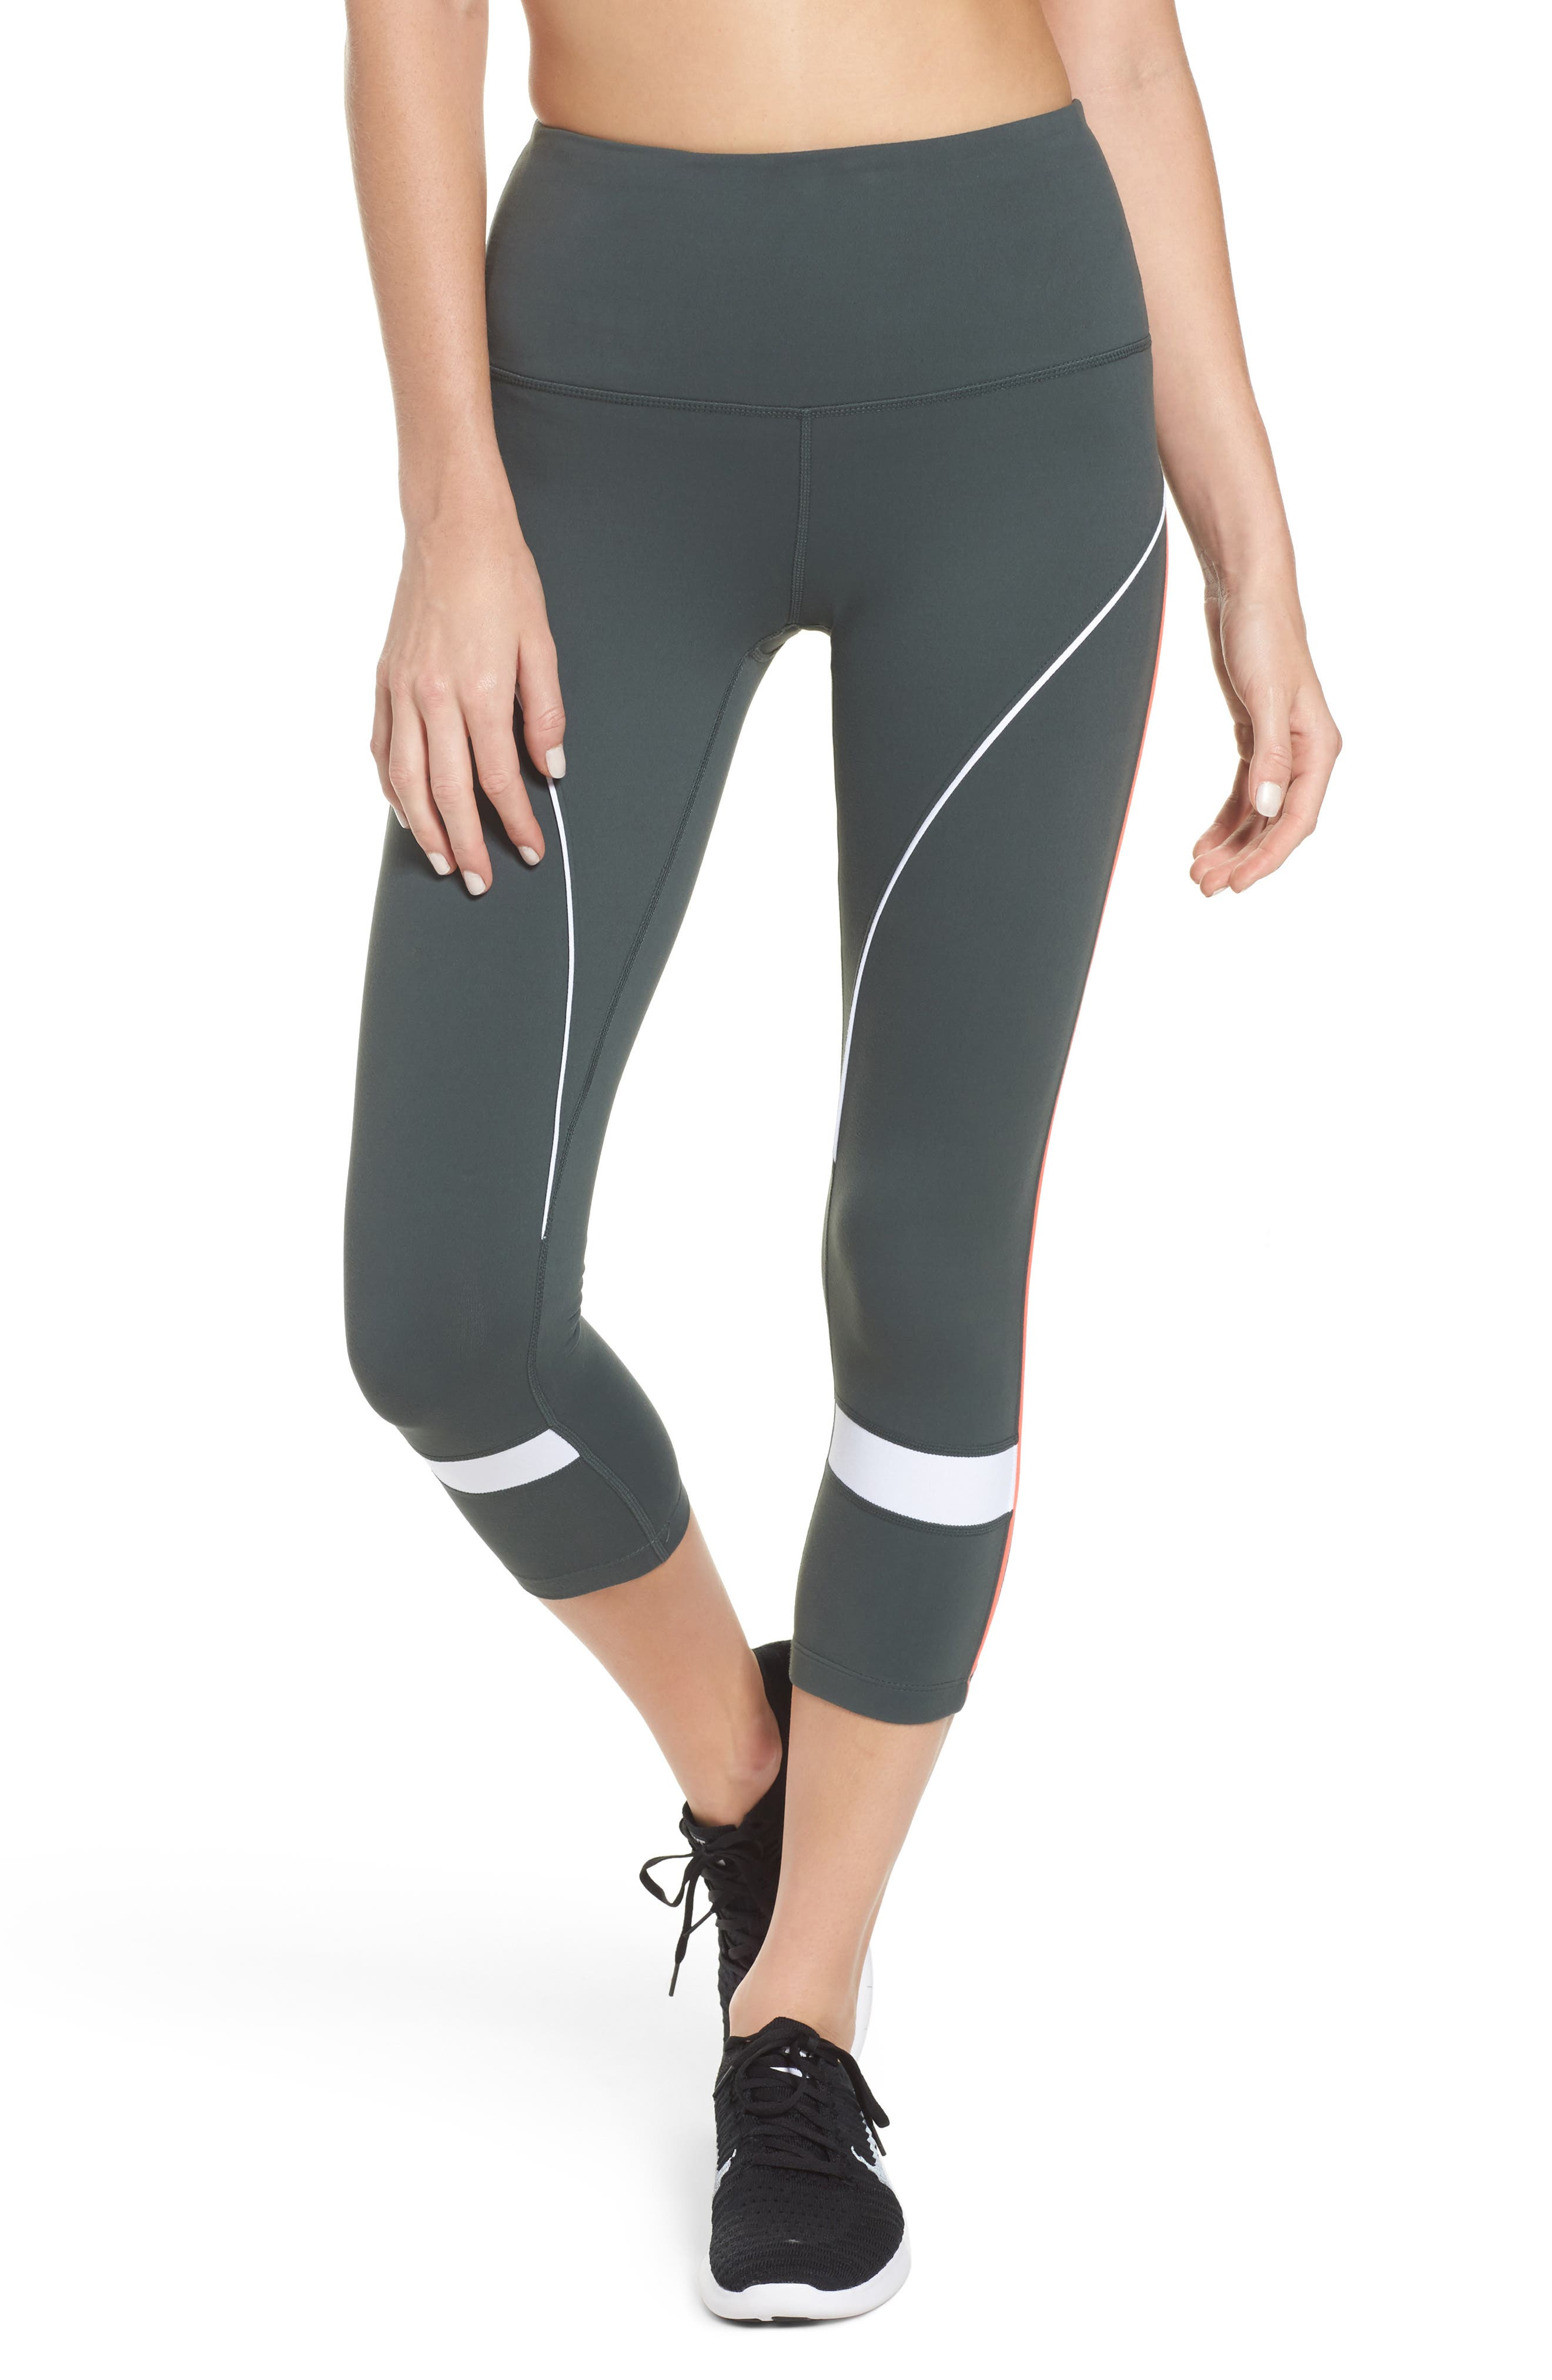 Piper High Waist Crop Leggings,                             Main thumbnail 1, color,                             021